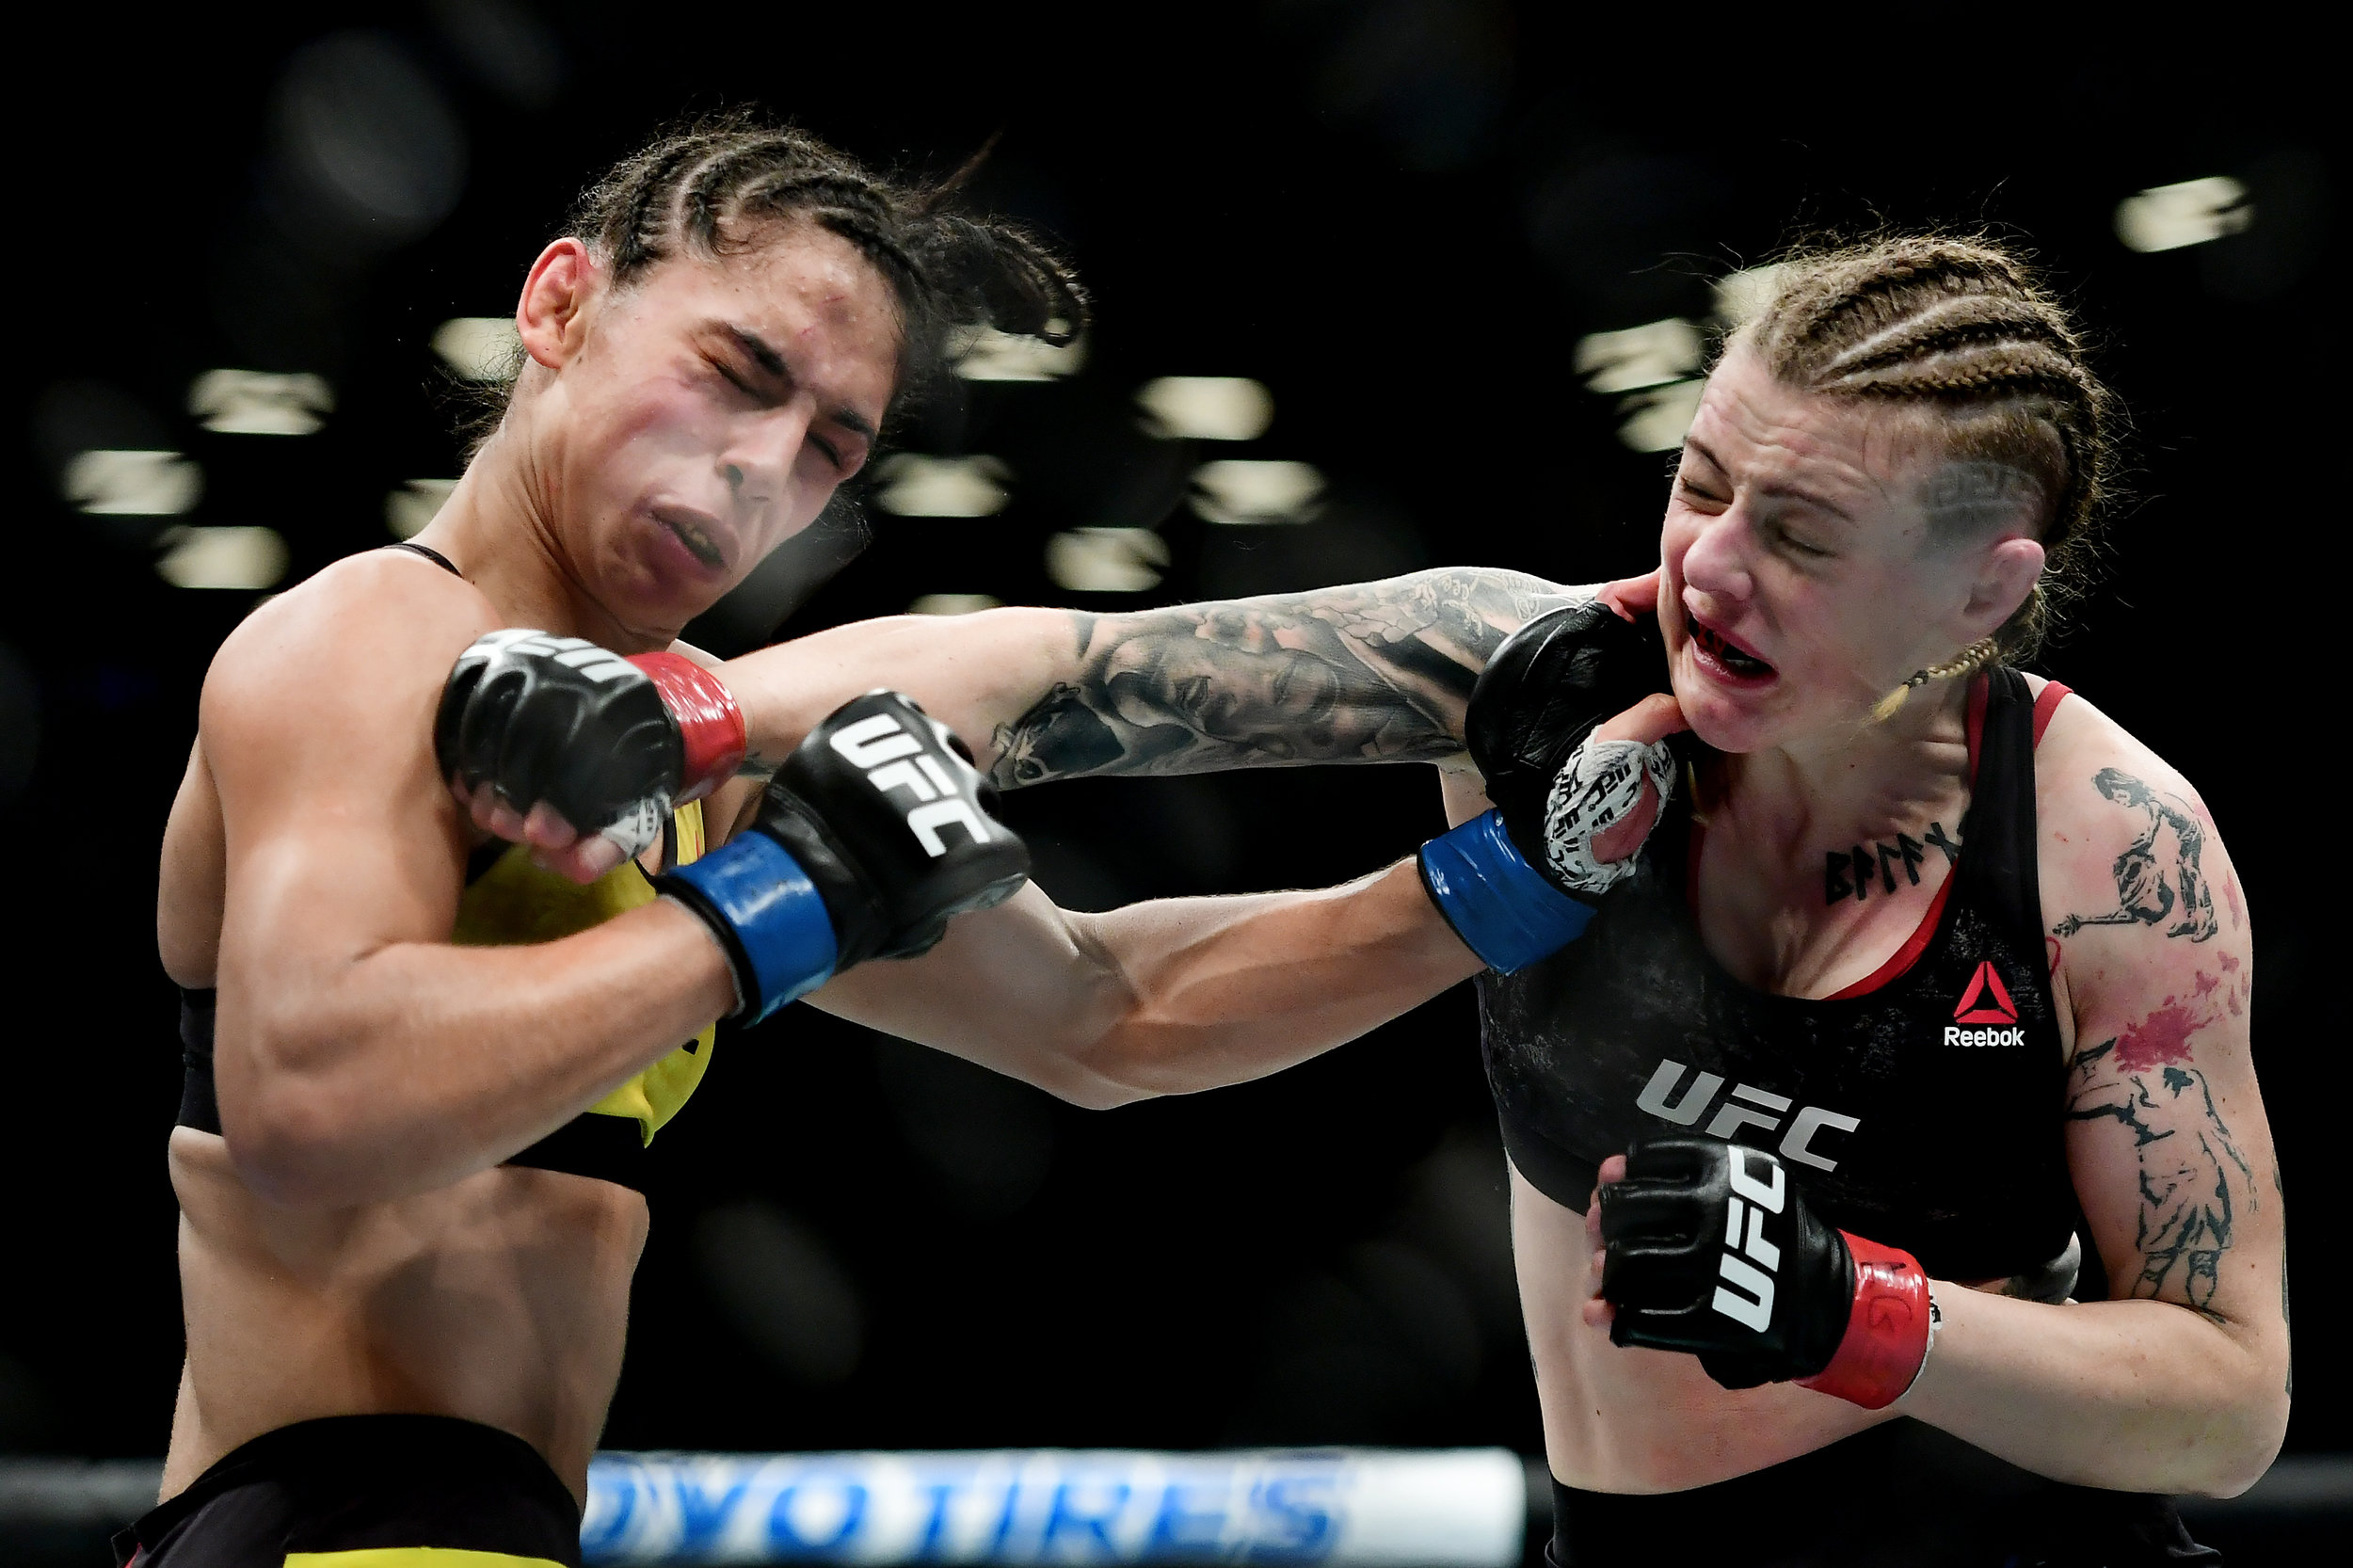 Joanne Calderwood of Scotland (R) fights against Ariane Lipski of Brazil during their Women's Flyweight fight at UFC Fight Night at Barclays Center on January 19, 2019 in New York City.